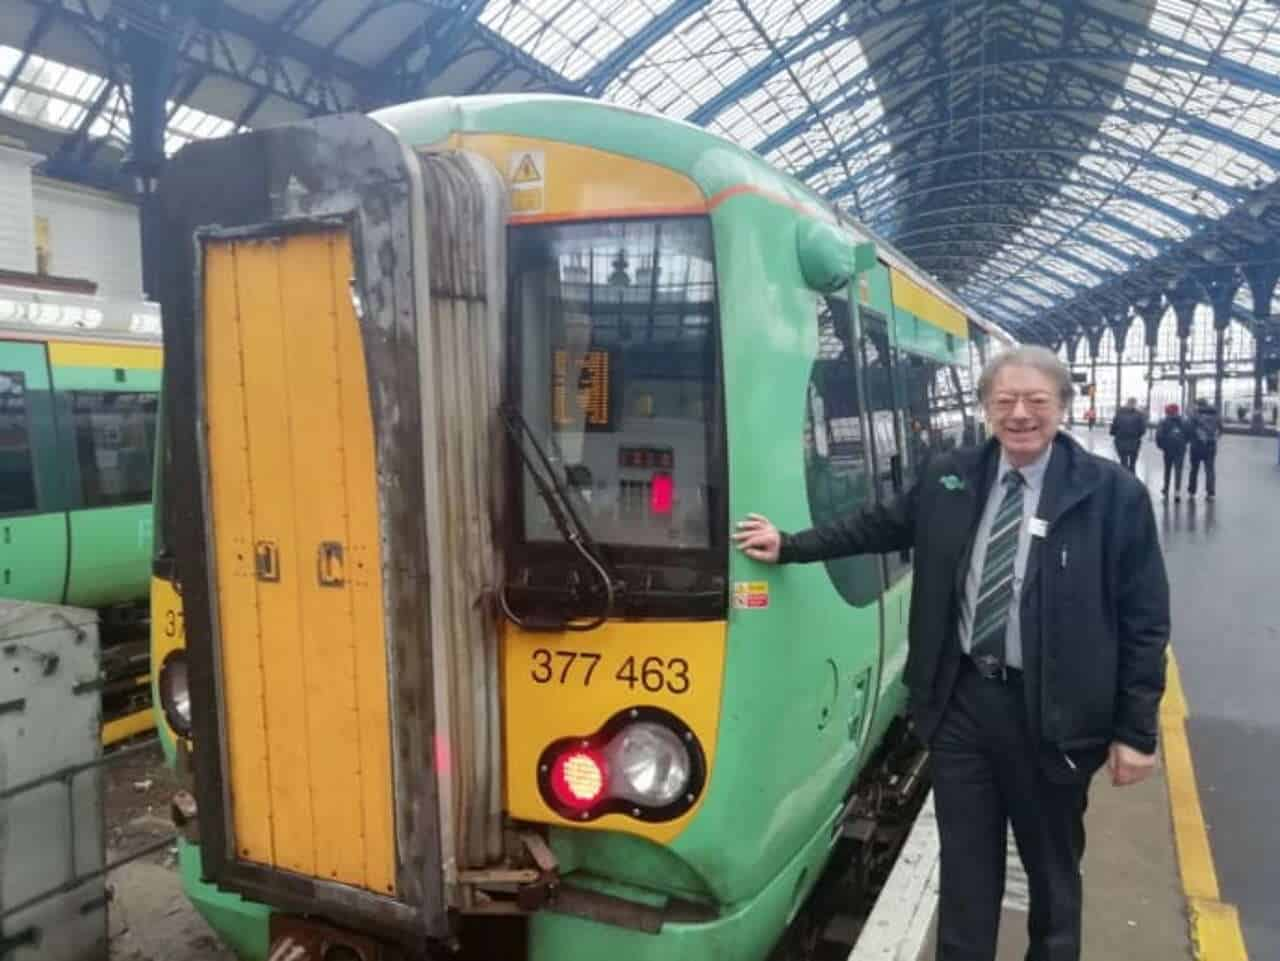 Alans farewell nearly 50 years working for the railway